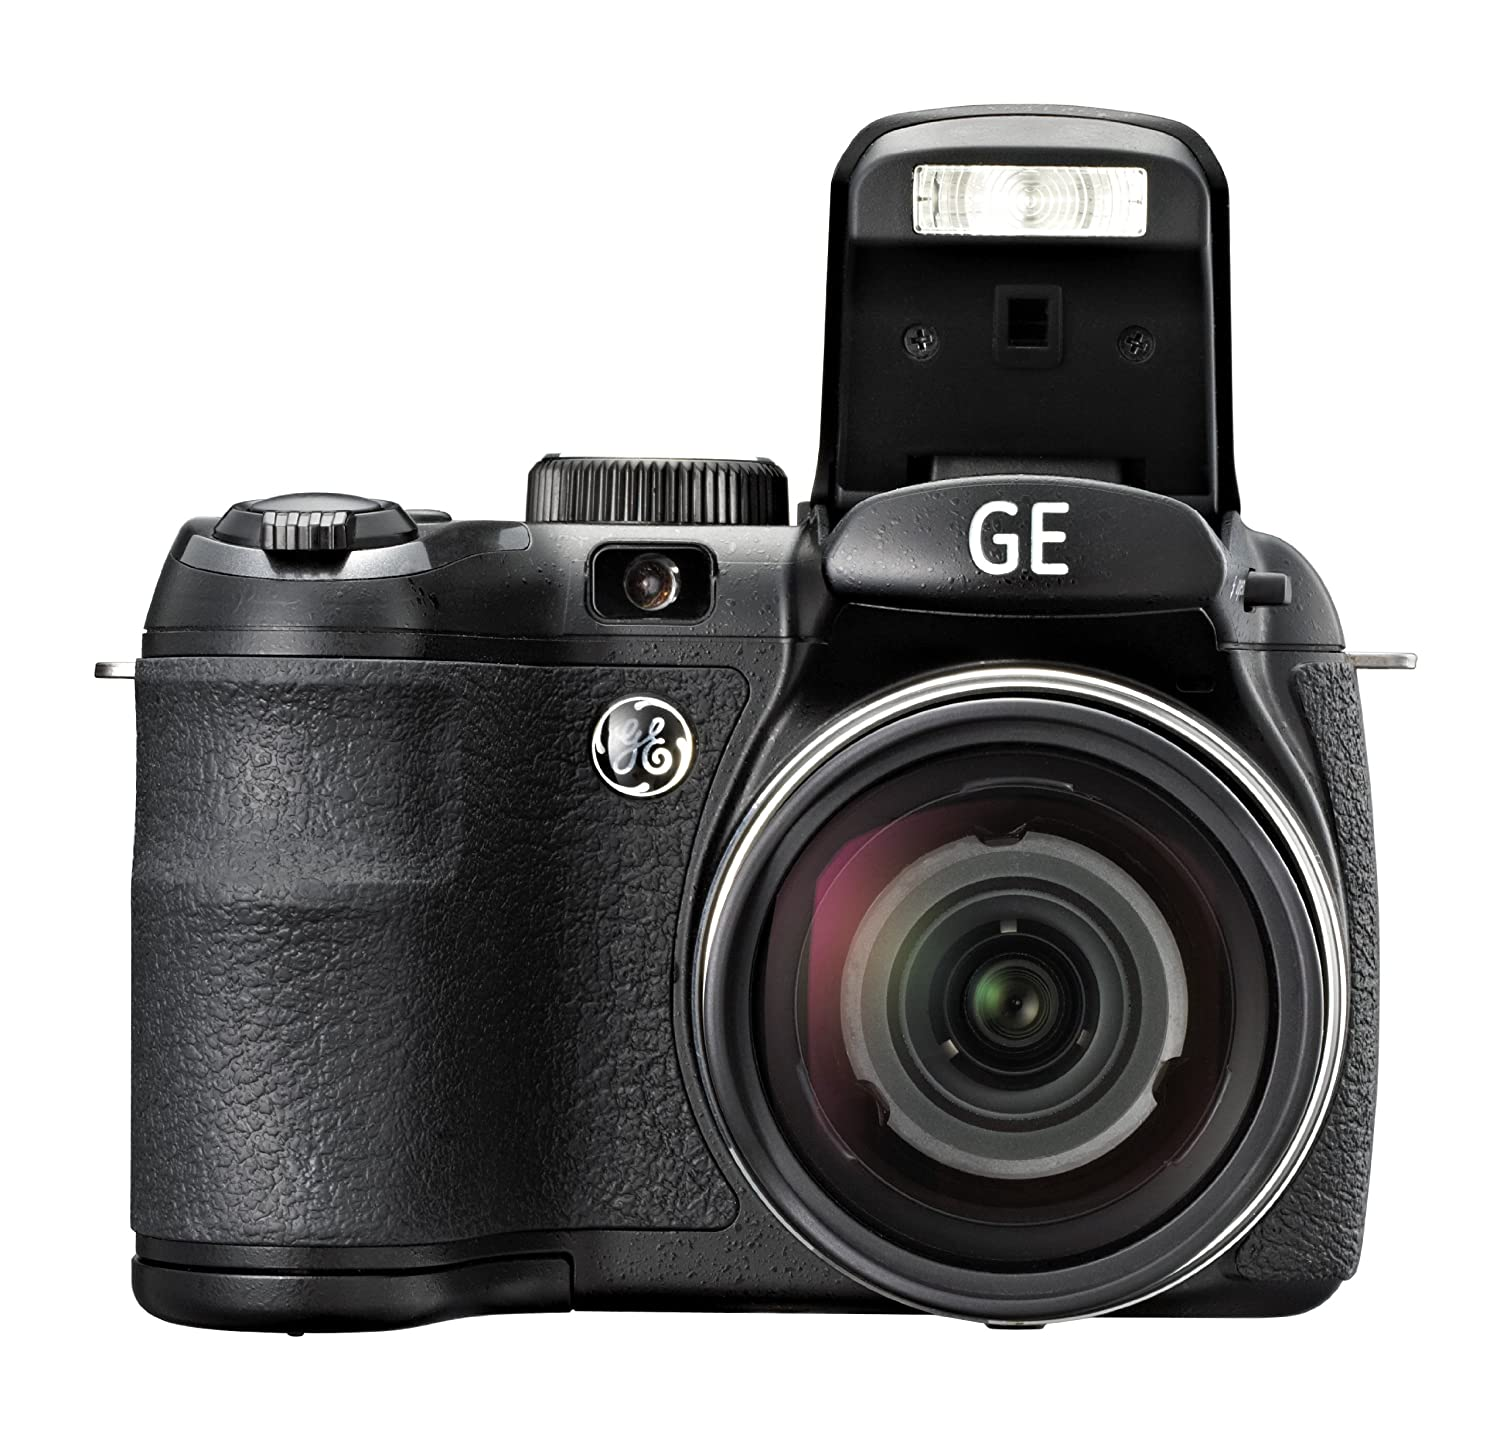 Amazon.com : GE X5 Power Pro Series 14.1 MP Digital Camera with 15X Optical  Zoom : Point And Shoot Digital Cameras : Camera & Photo